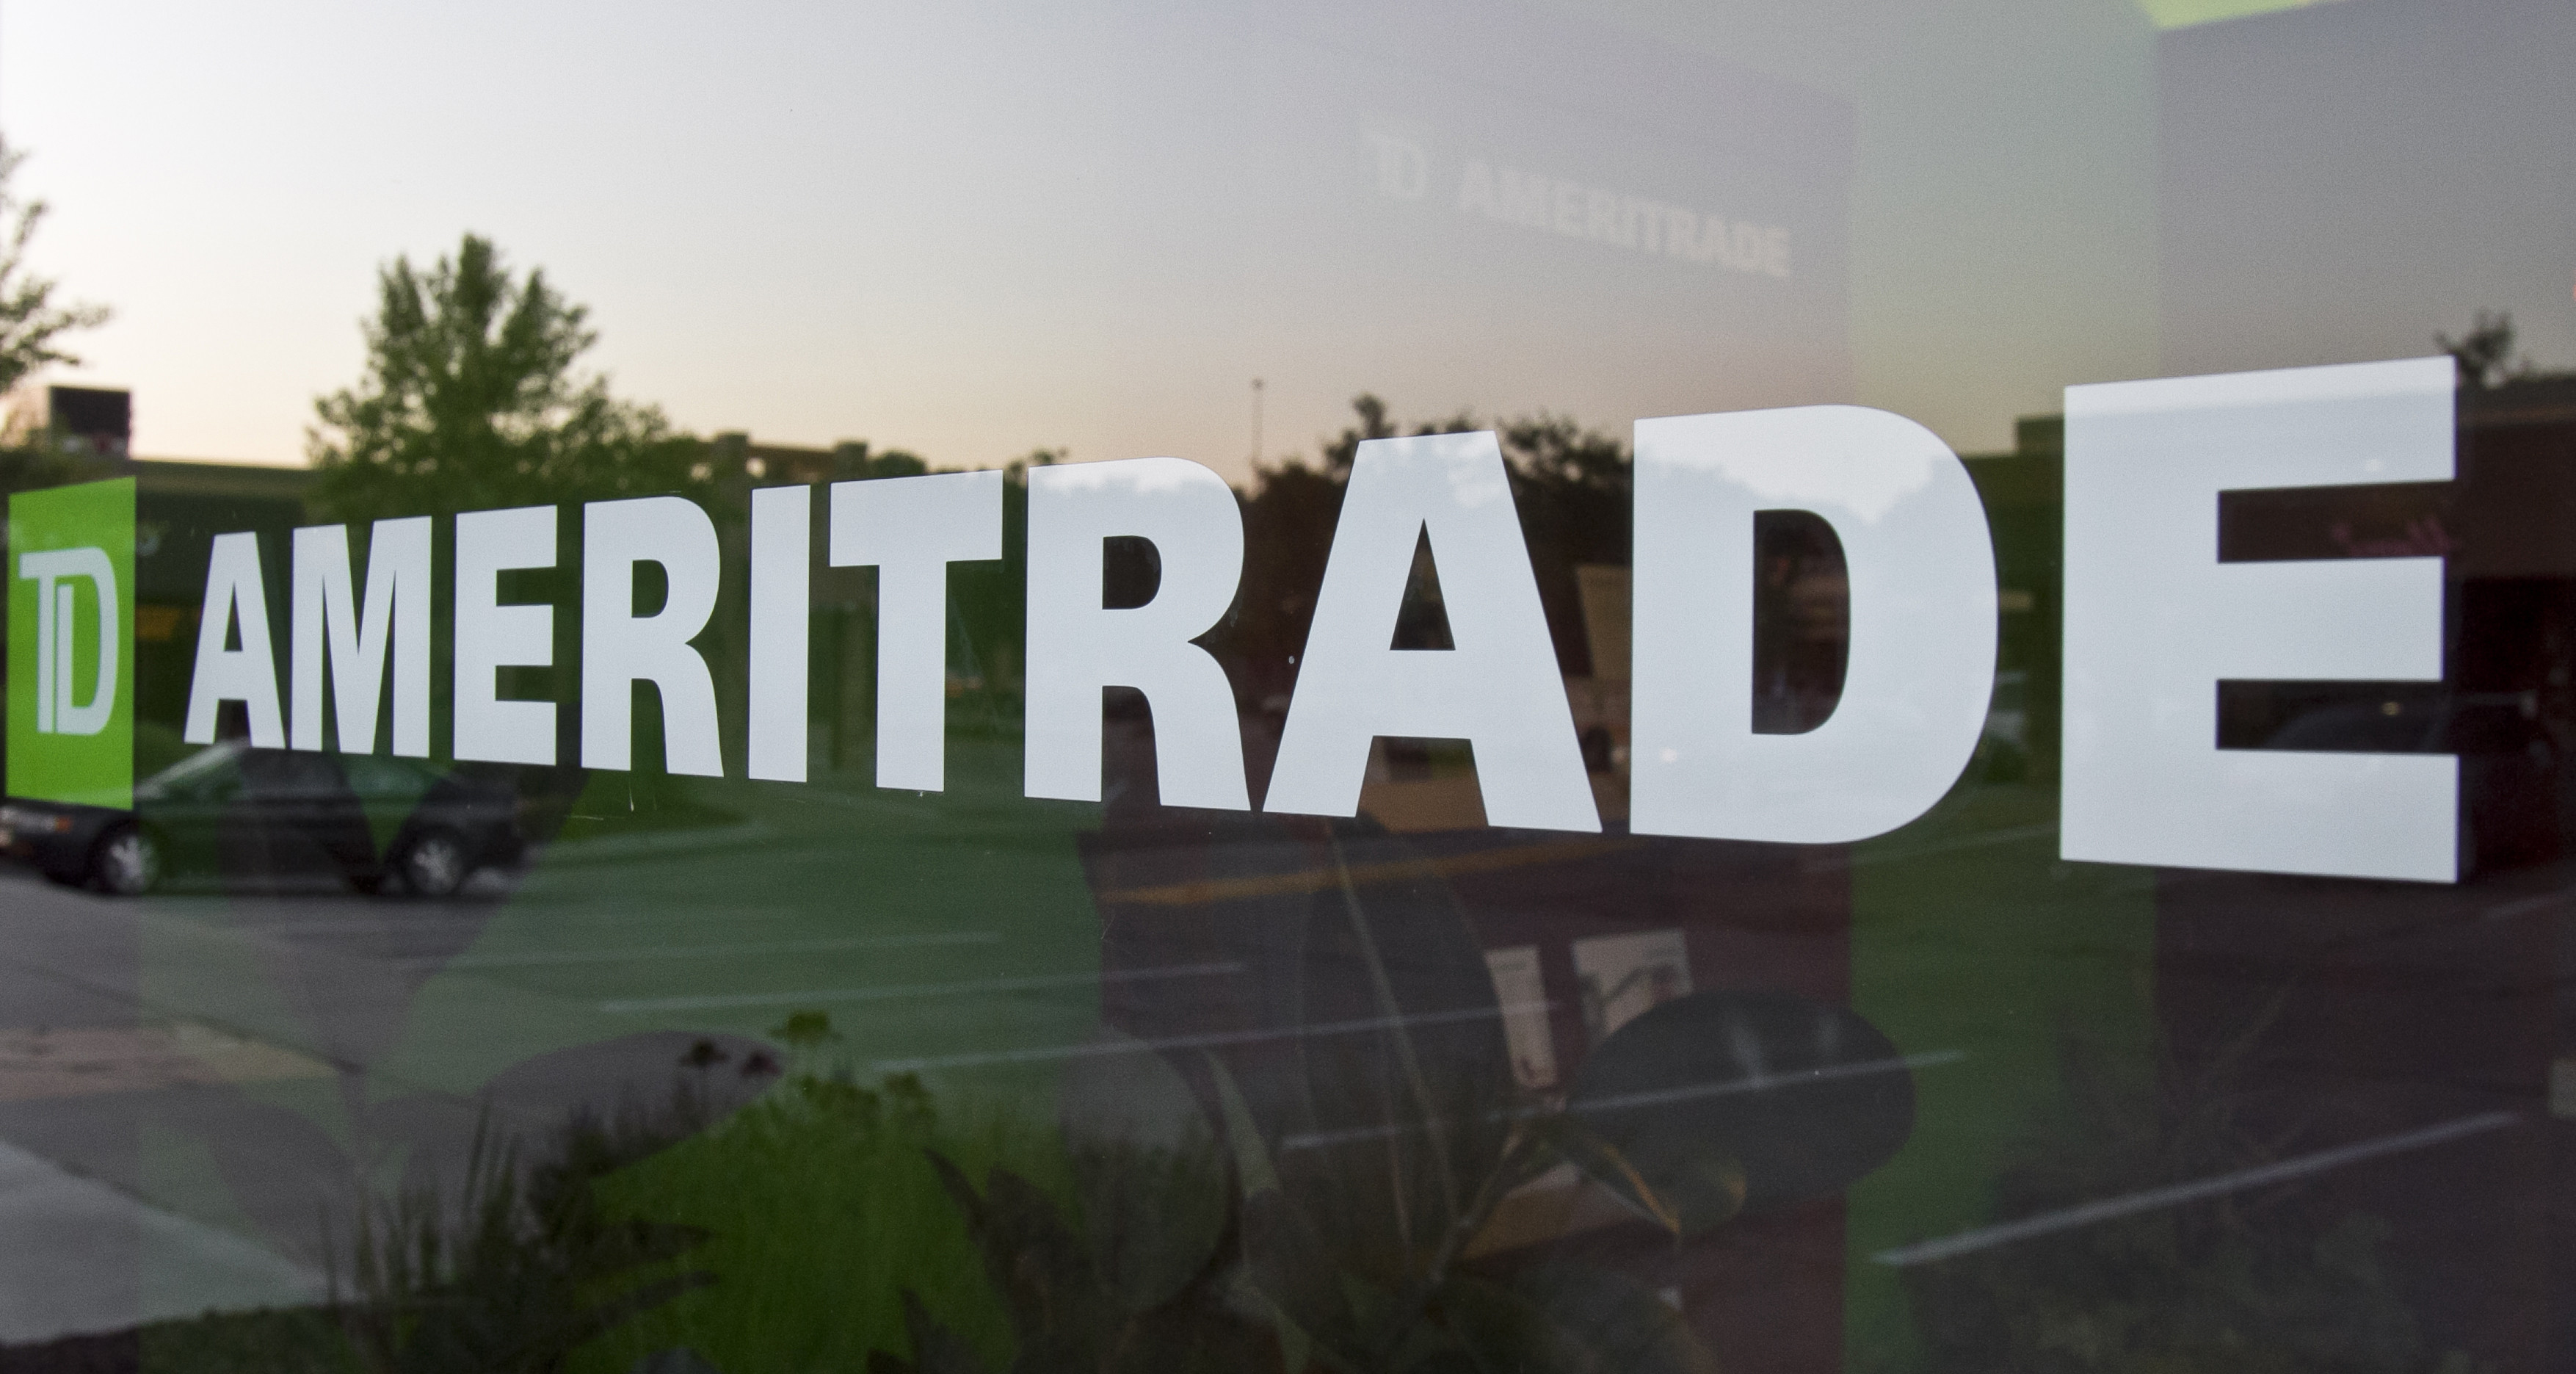 Scottrade Quotes And Research Td Ameritrade To Buy Scottrade In $4B Cashandstock Deal  Wtop